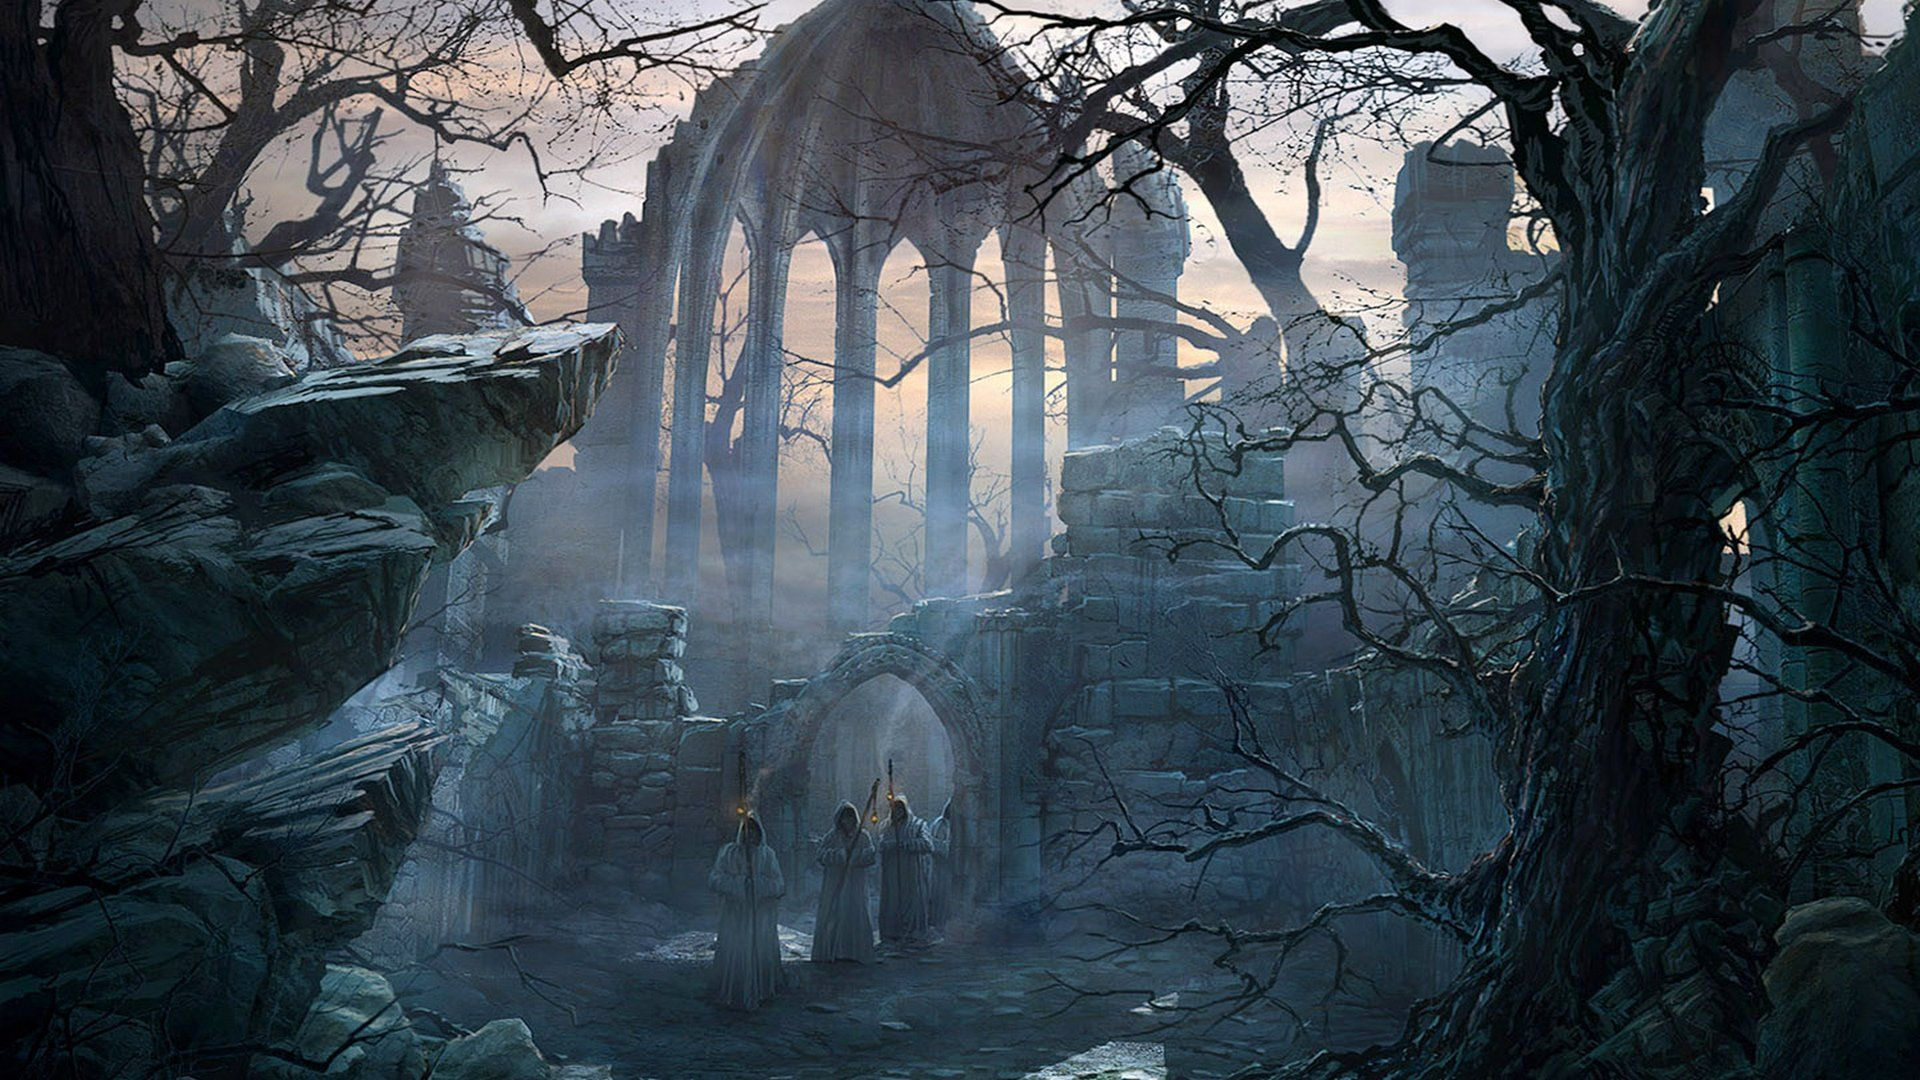 Gothic hd wallpaper for laptop